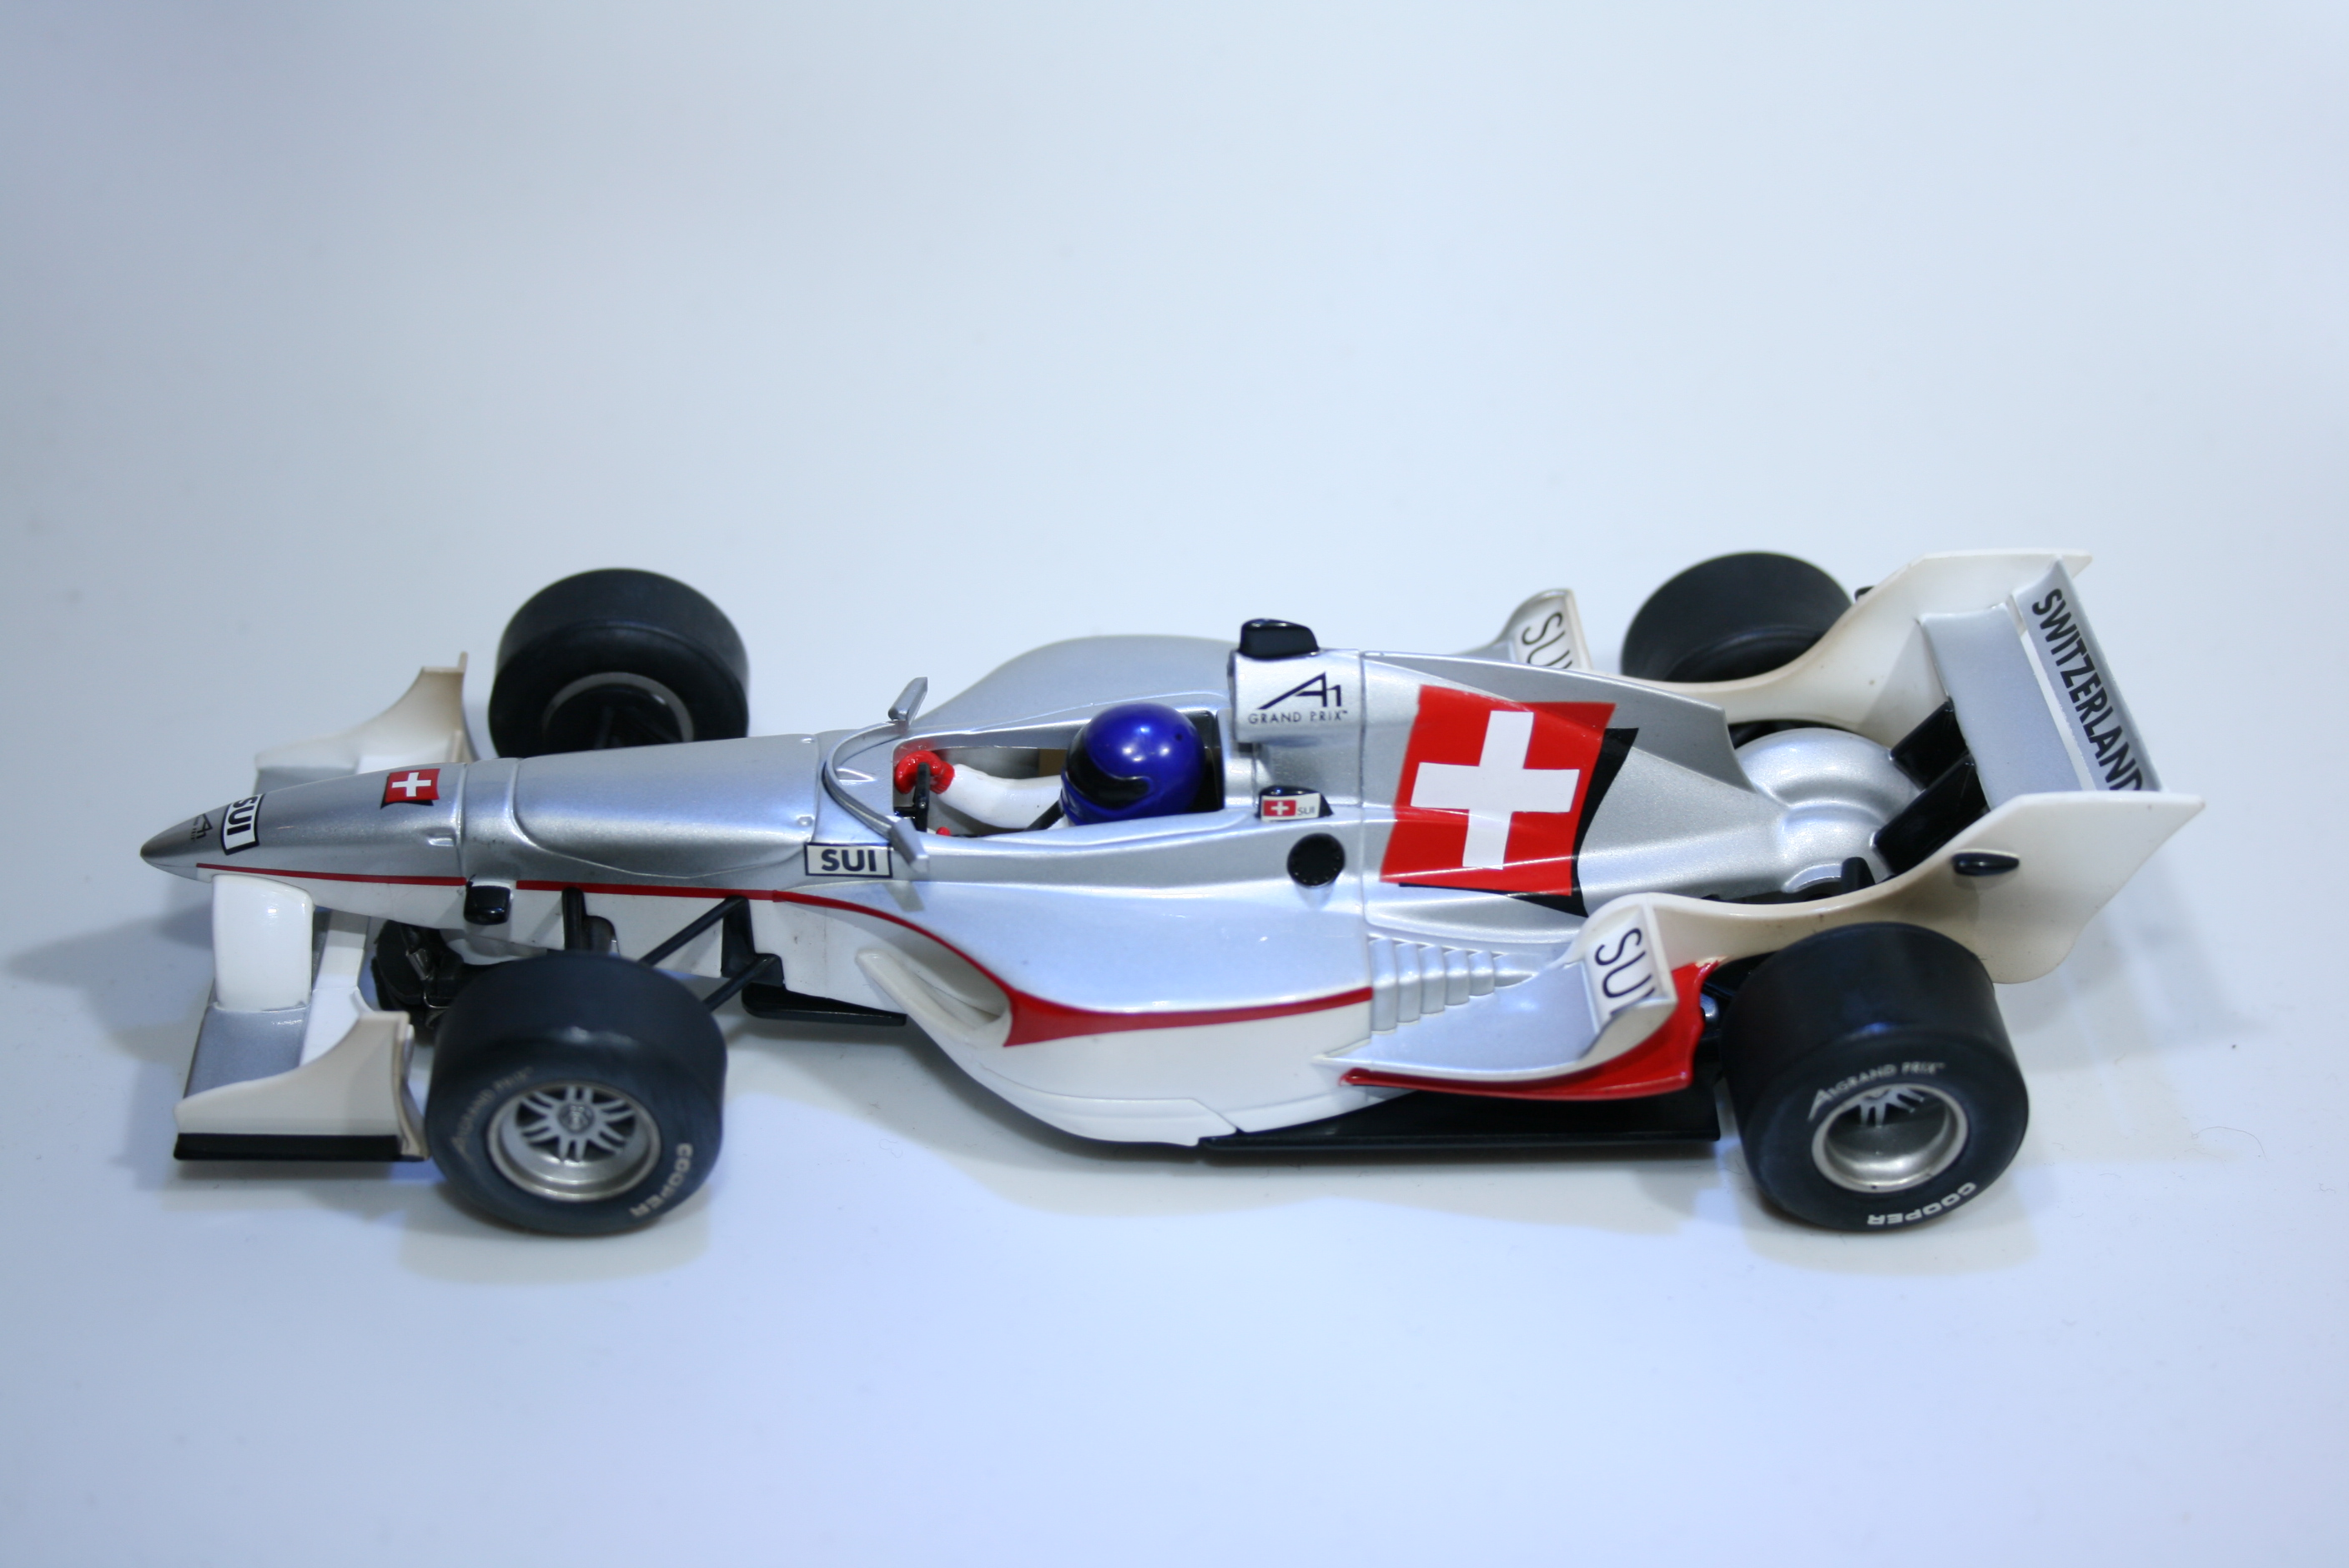 154 A1GP Switzerland 2006 S Bueli Scalextric C2709 2006 Boxed